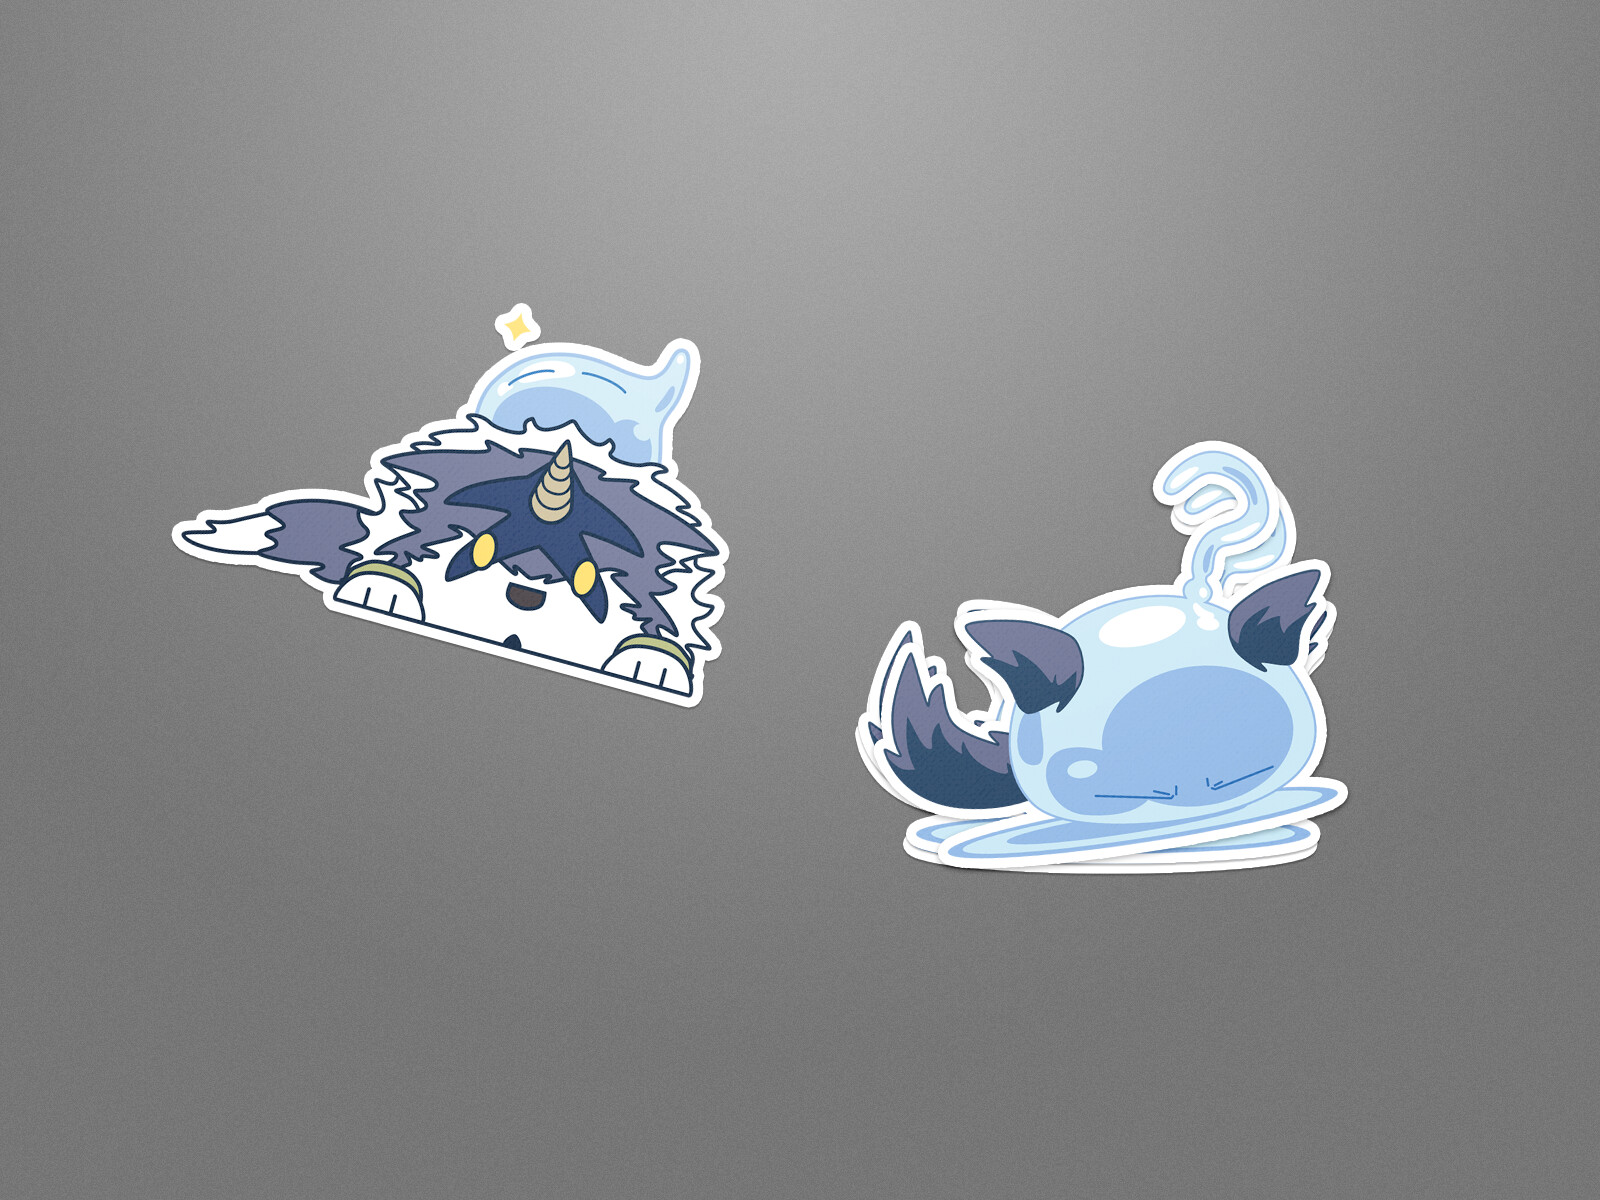 Fan Inspired Little Blue Slime Stickers